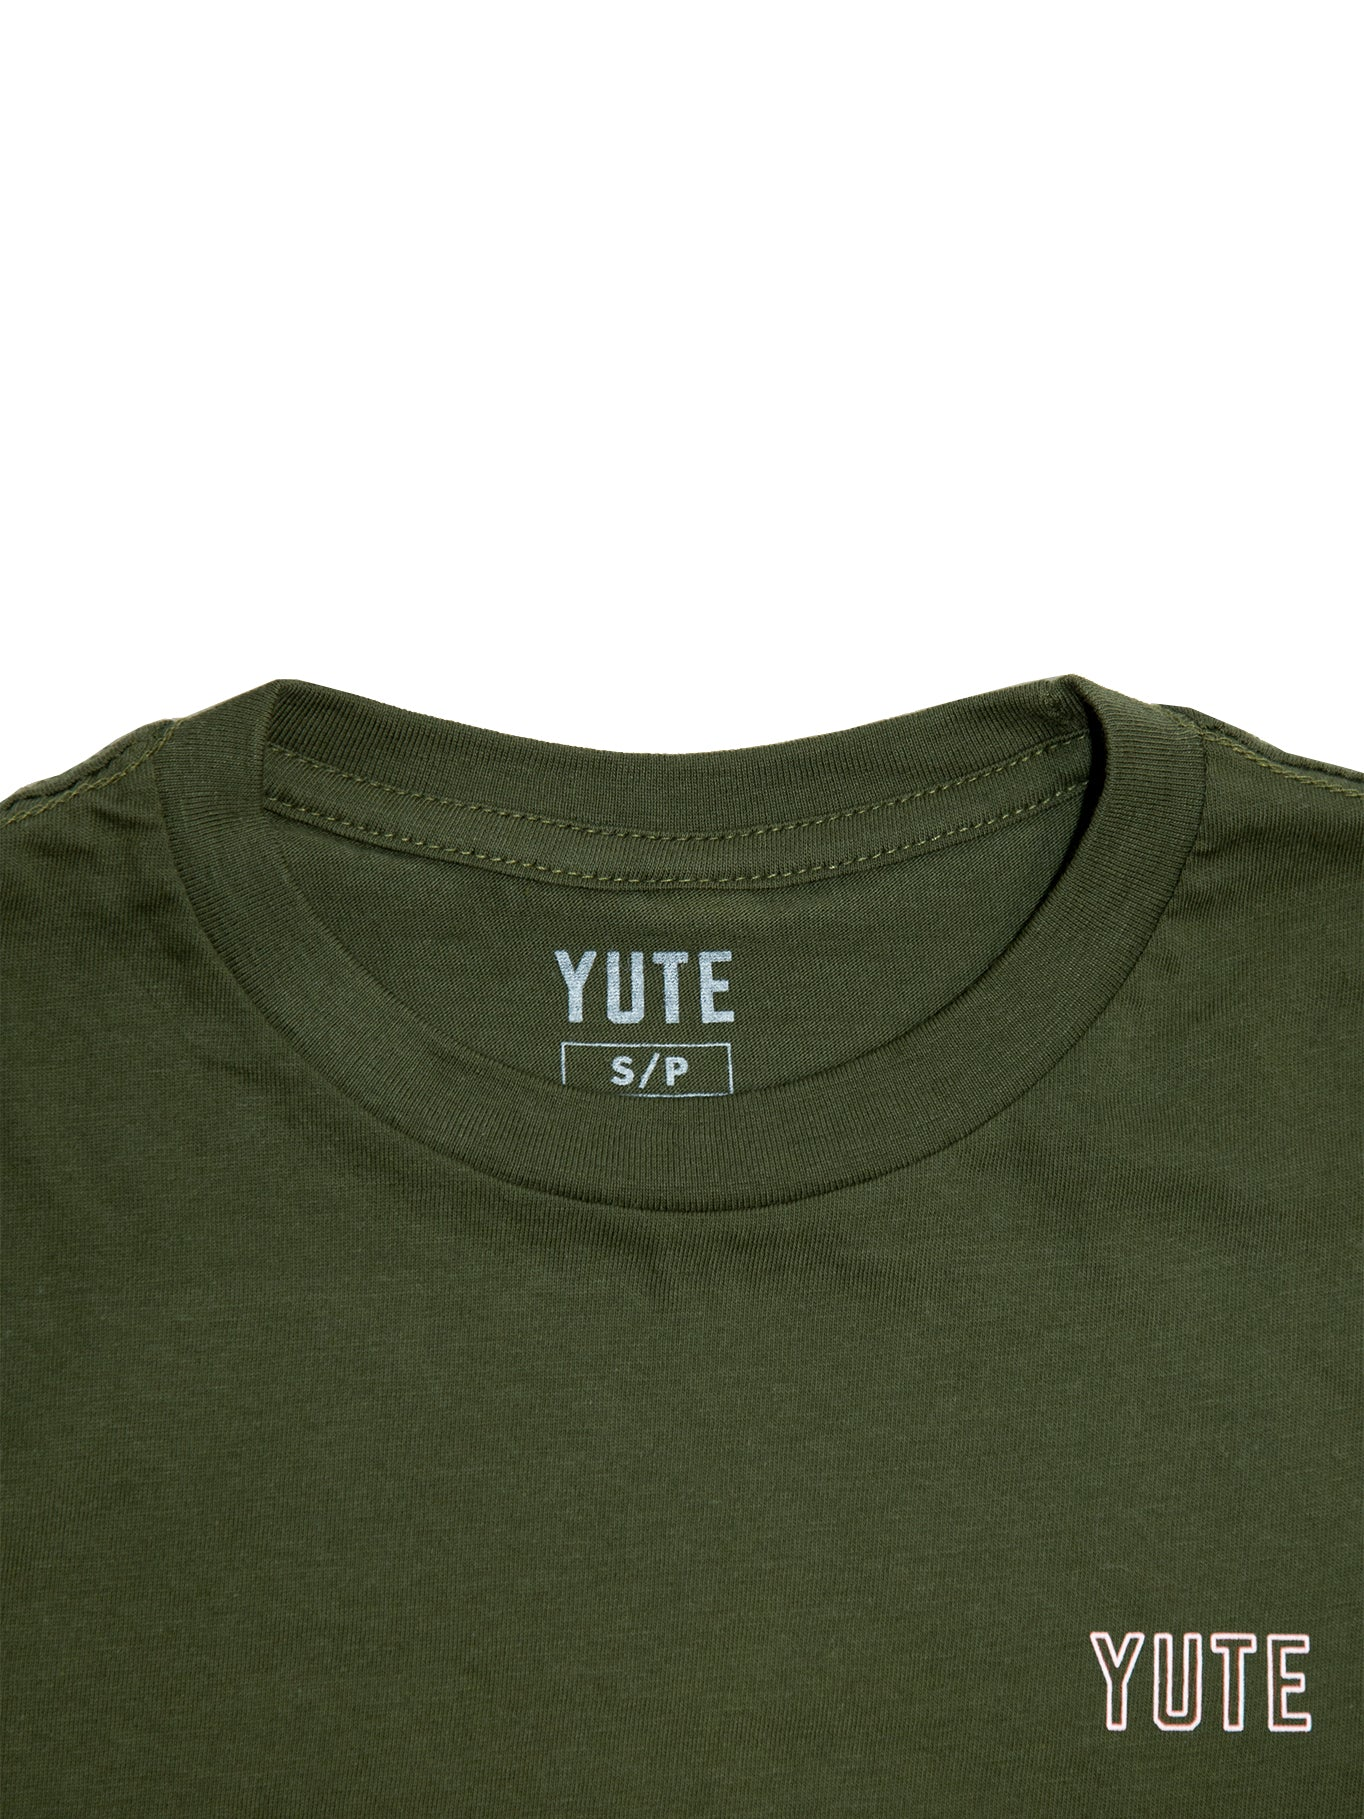 Close up of collar with YUTE branded tag